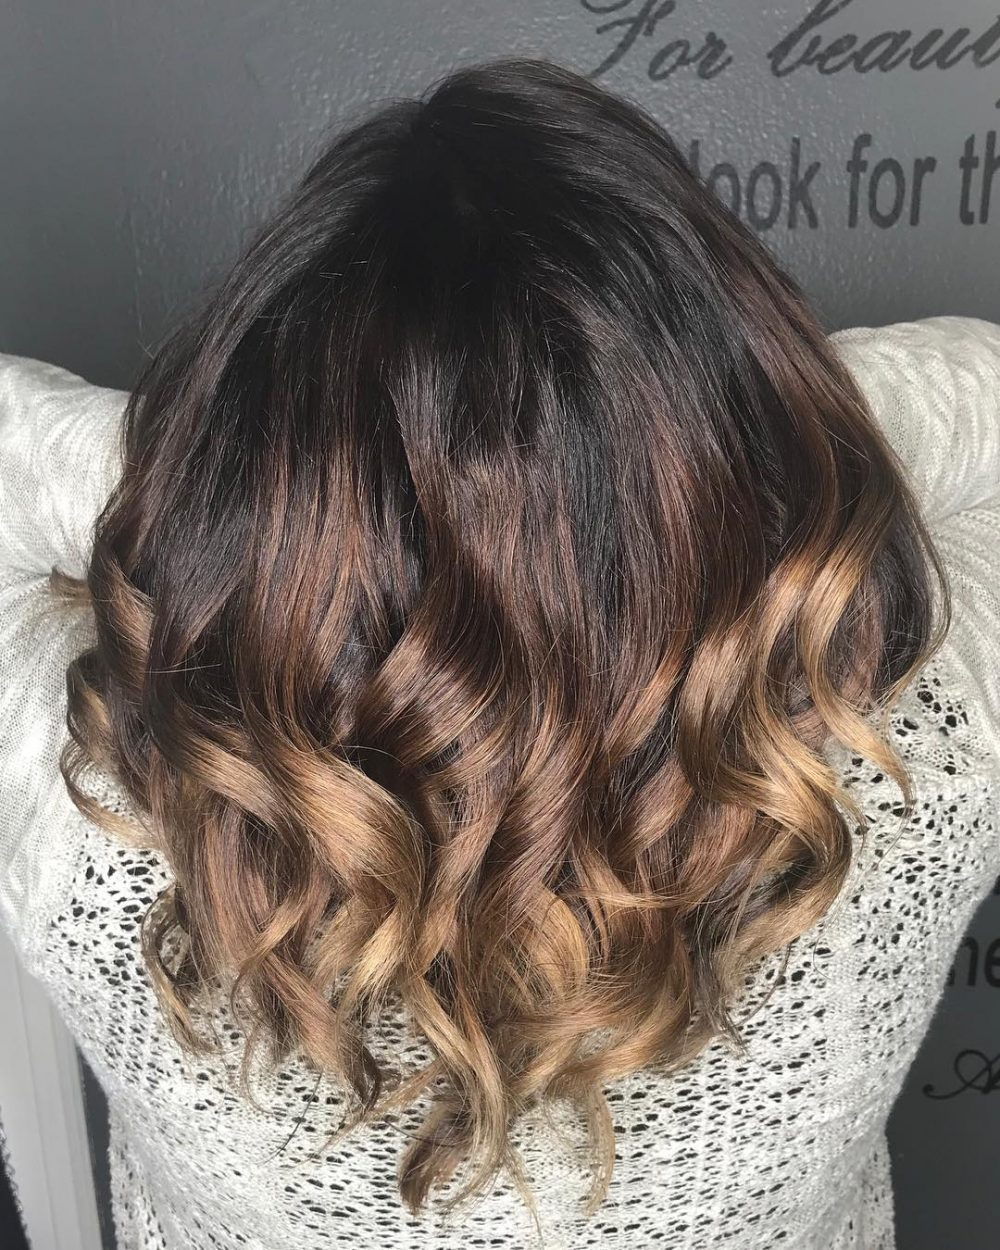 36 Best Short Ombre Hair Ideas Of 2018